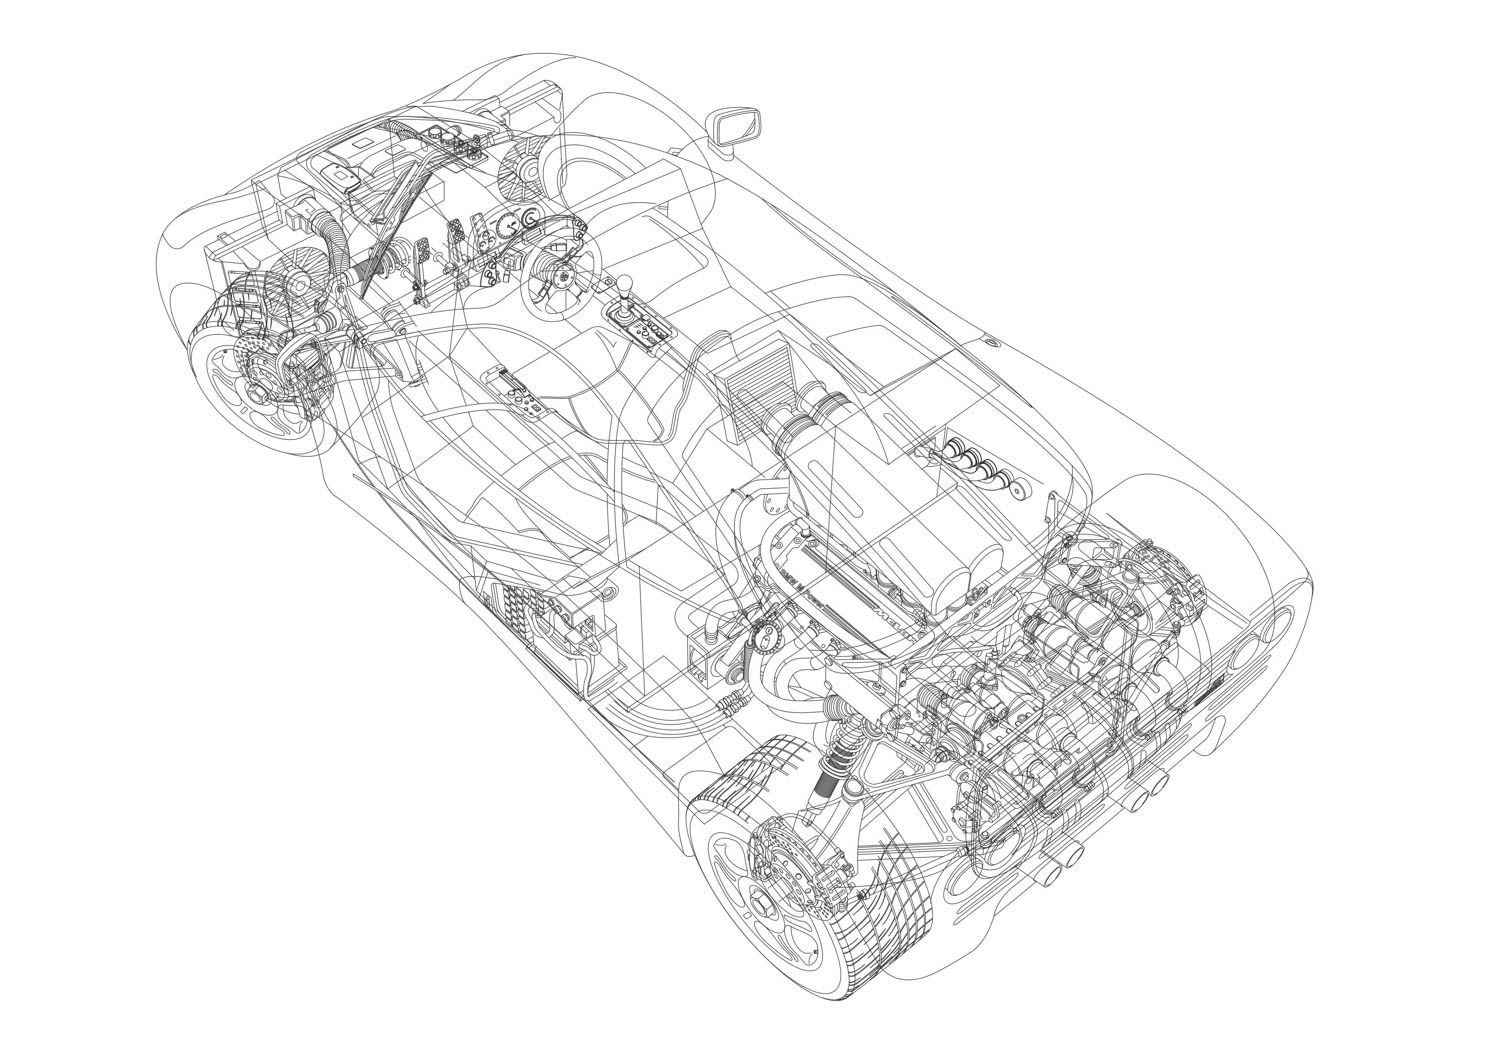 These Original Mclaren F1 Technical Drawings Are From The